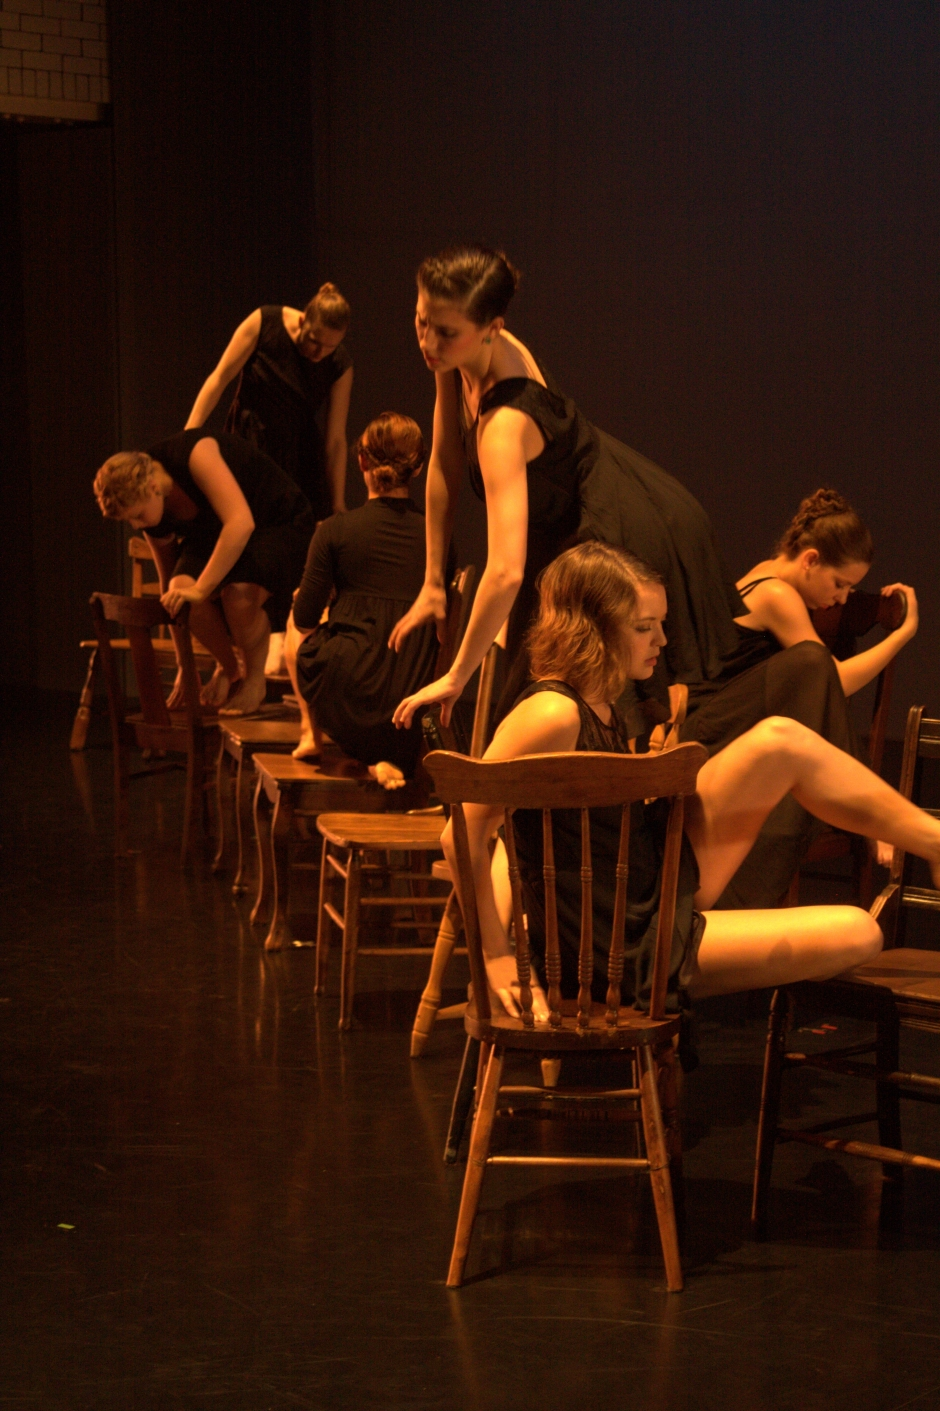 """Ensemble dancers in Shannon Sterne's """"Inundation"""".  From L to R: Christina Coppel, Kristy Clement, Andrea Alvarez, Emma Steele, Karlie Budge and Abbey Hafer. Photo by Brad Petot."""